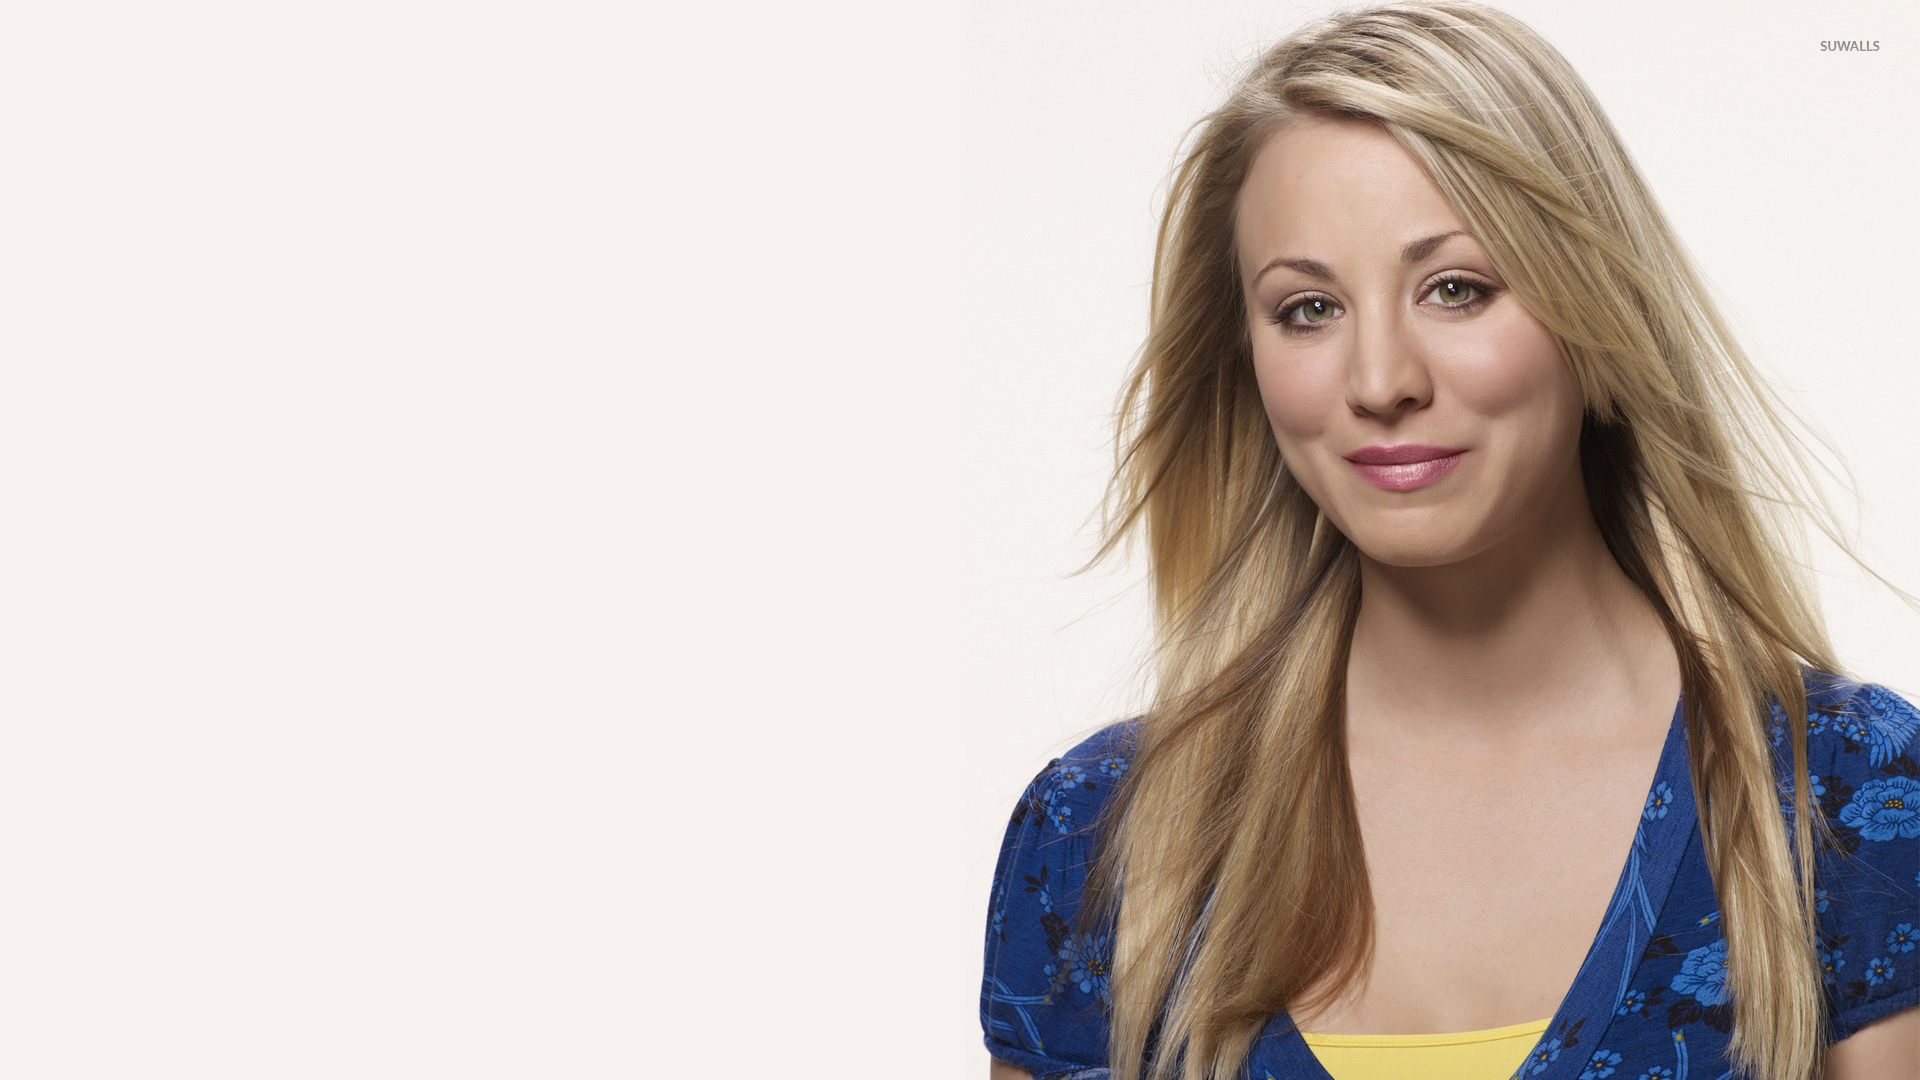 Celebrity Kaley Cuoco wallpapers. Pictures, images, Kaley ...